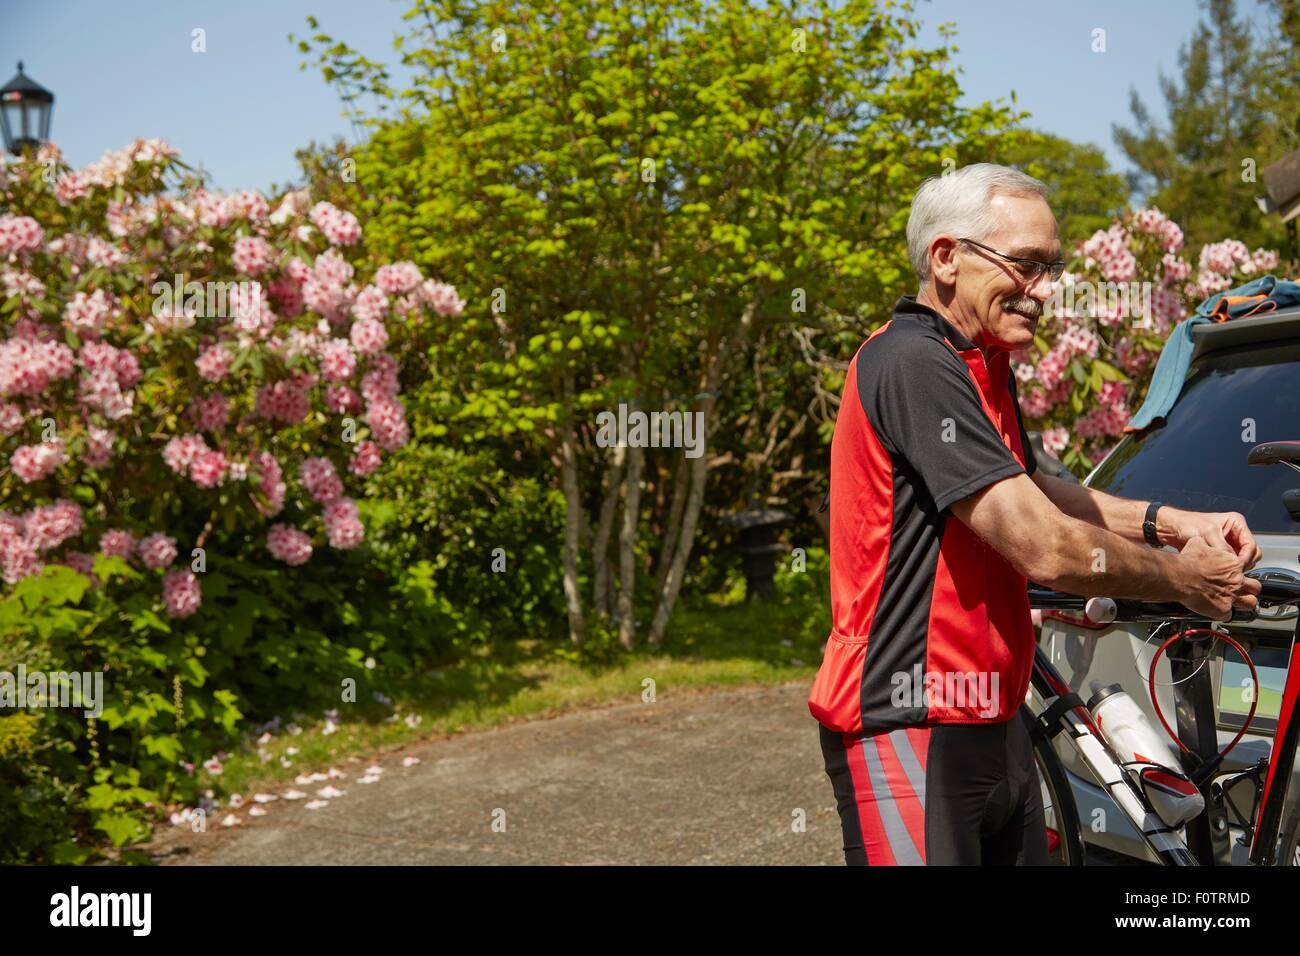 Senior man attaching bicycle to car - Stock Image